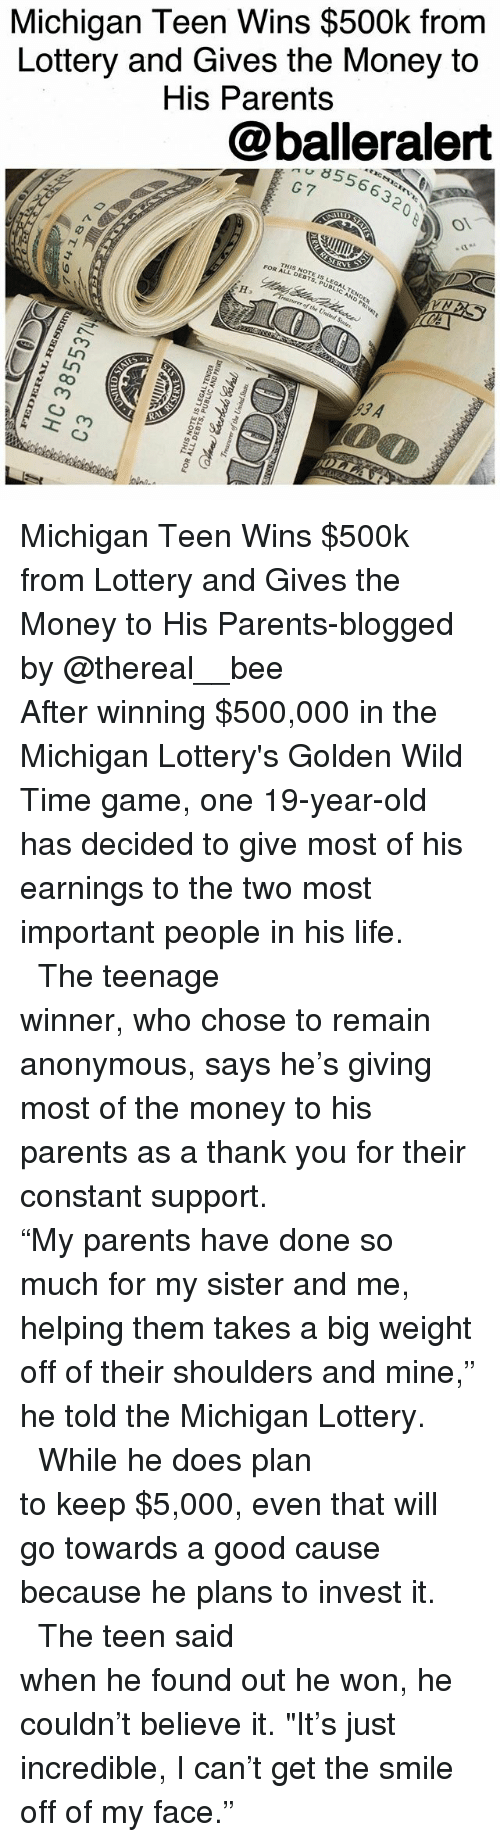 "Memes, 🤖, and Als: Michigan Teen Wins $500k from  Lottery and Gives the Money to  His Parents  @balleralert  8556632  G7  RVE  THSDEBTS,PUBLIC AND PRIVAt  NOTE SLEGAL, TENDER  FOR AL-NOTE I  ure of the United States  93 A  R  OLLA  loan  amS 곁 pun a fIJo aarnroatL  aaaN3LTVD37 SI 3LON SIHI  Aay  011ラ  EJ  LESSBE0H  48T+1 9 Michigan Teen Wins $500k from Lottery and Gives the Money to His Parents-blogged by @thereal__bee ⠀⠀⠀⠀⠀⠀⠀⠀⠀ ⠀⠀⠀⠀⠀⠀⠀⠀⠀ After winning $500,000 in the Michigan Lottery's Golden Wild Time game, one 19-year-old has decided to give most of his earnings to the two most important people in his life. ⠀⠀⠀⠀⠀⠀⠀⠀⠀ ⠀⠀⠀⠀⠀⠀⠀⠀⠀ The teenage winner, who chose to remain anonymous, says he's giving most of the money to his parents as a thank you for their constant support. ⠀⠀⠀⠀⠀⠀⠀⠀⠀ ⠀⠀⠀⠀⠀⠀⠀⠀⠀ ""My parents have done so much for my sister and me, helping them takes a big weight off of their shoulders and mine,"" he told the Michigan Lottery. ⠀⠀⠀⠀⠀⠀⠀⠀⠀ ⠀⠀⠀⠀⠀⠀⠀⠀⠀ While he does plan to keep $5,000, even that will go towards a good cause because he plans to invest it. ⠀⠀⠀⠀⠀⠀⠀⠀⠀ ⠀⠀⠀⠀⠀⠀⠀⠀⠀ The teen said when he found out he won, he couldn't believe it. ""It's just incredible, I can't get the smile off of my face."""